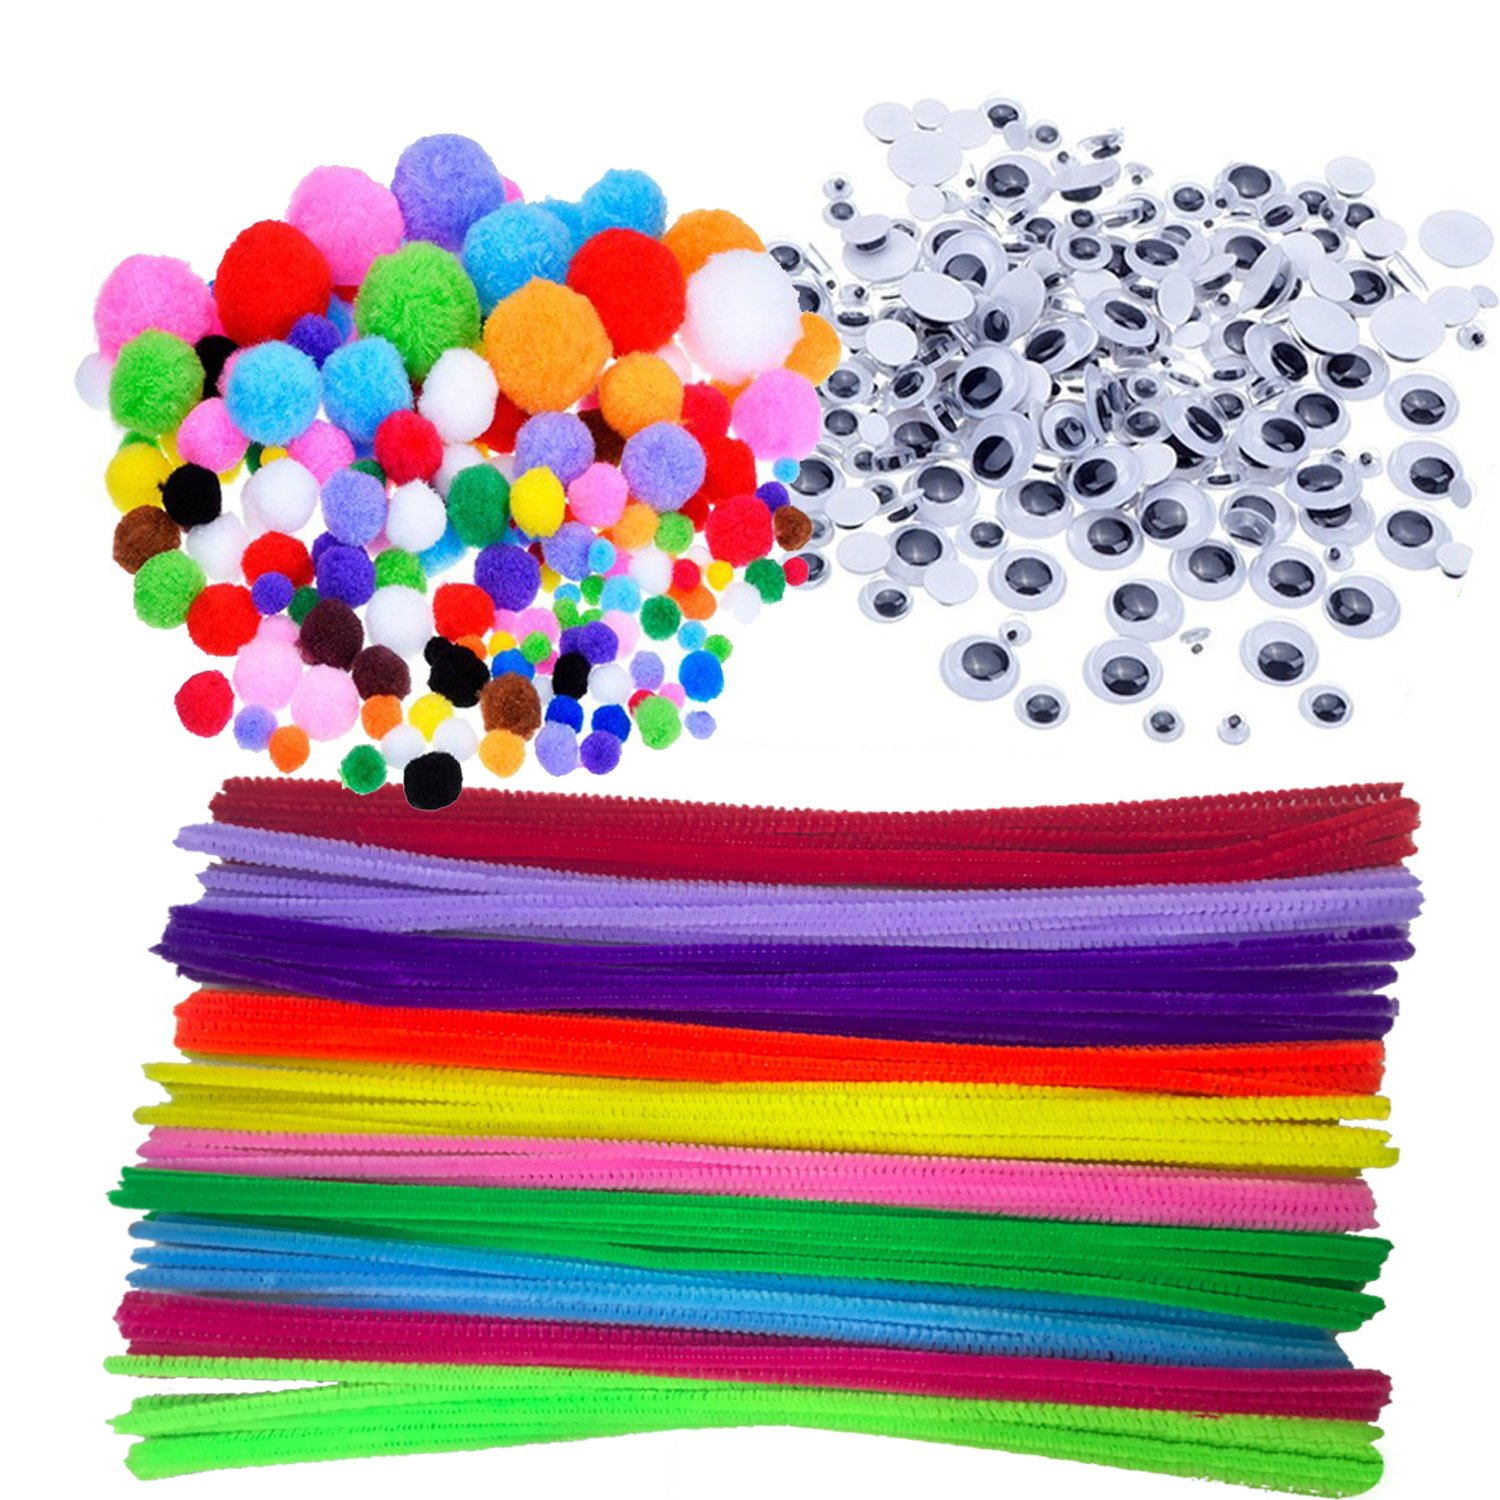 Wartoon Pipe Cleaners Crafts Set, Pipe Cleaners Chenille Stem and Pompoms with Googly Wiggle Eyes for Craft DIY Art Supplies, 500 pieces